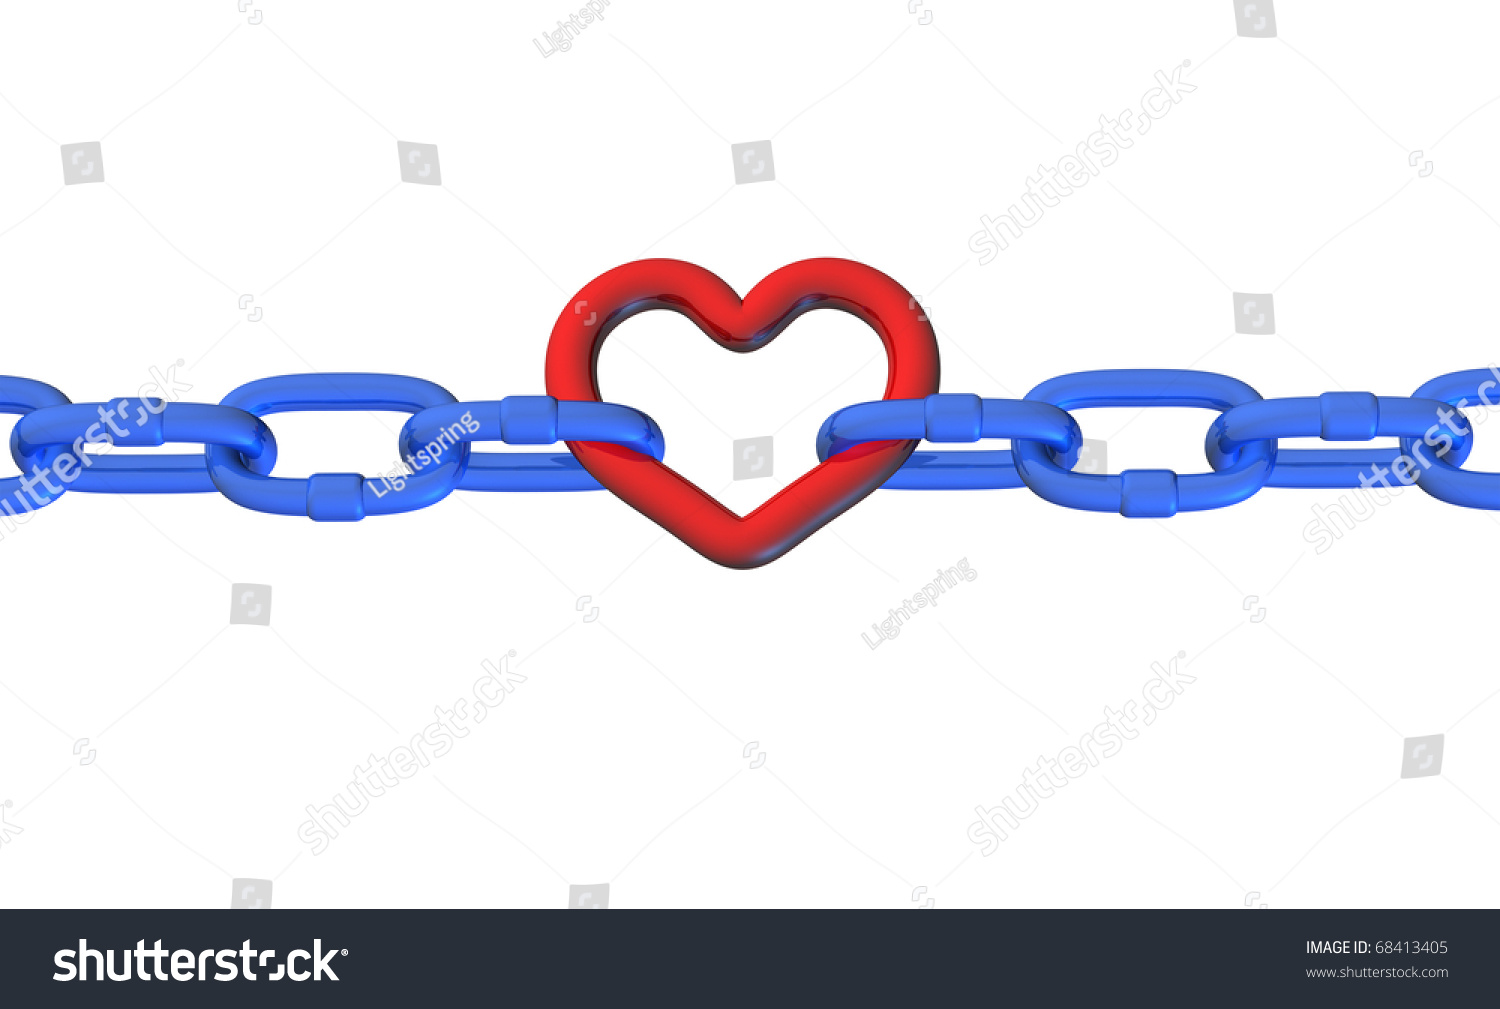 Heart stroke attack stressed pressure health stock illustration heart stroke attack stressed pressure health medical symbol connections chain links isolated icon biocorpaavc